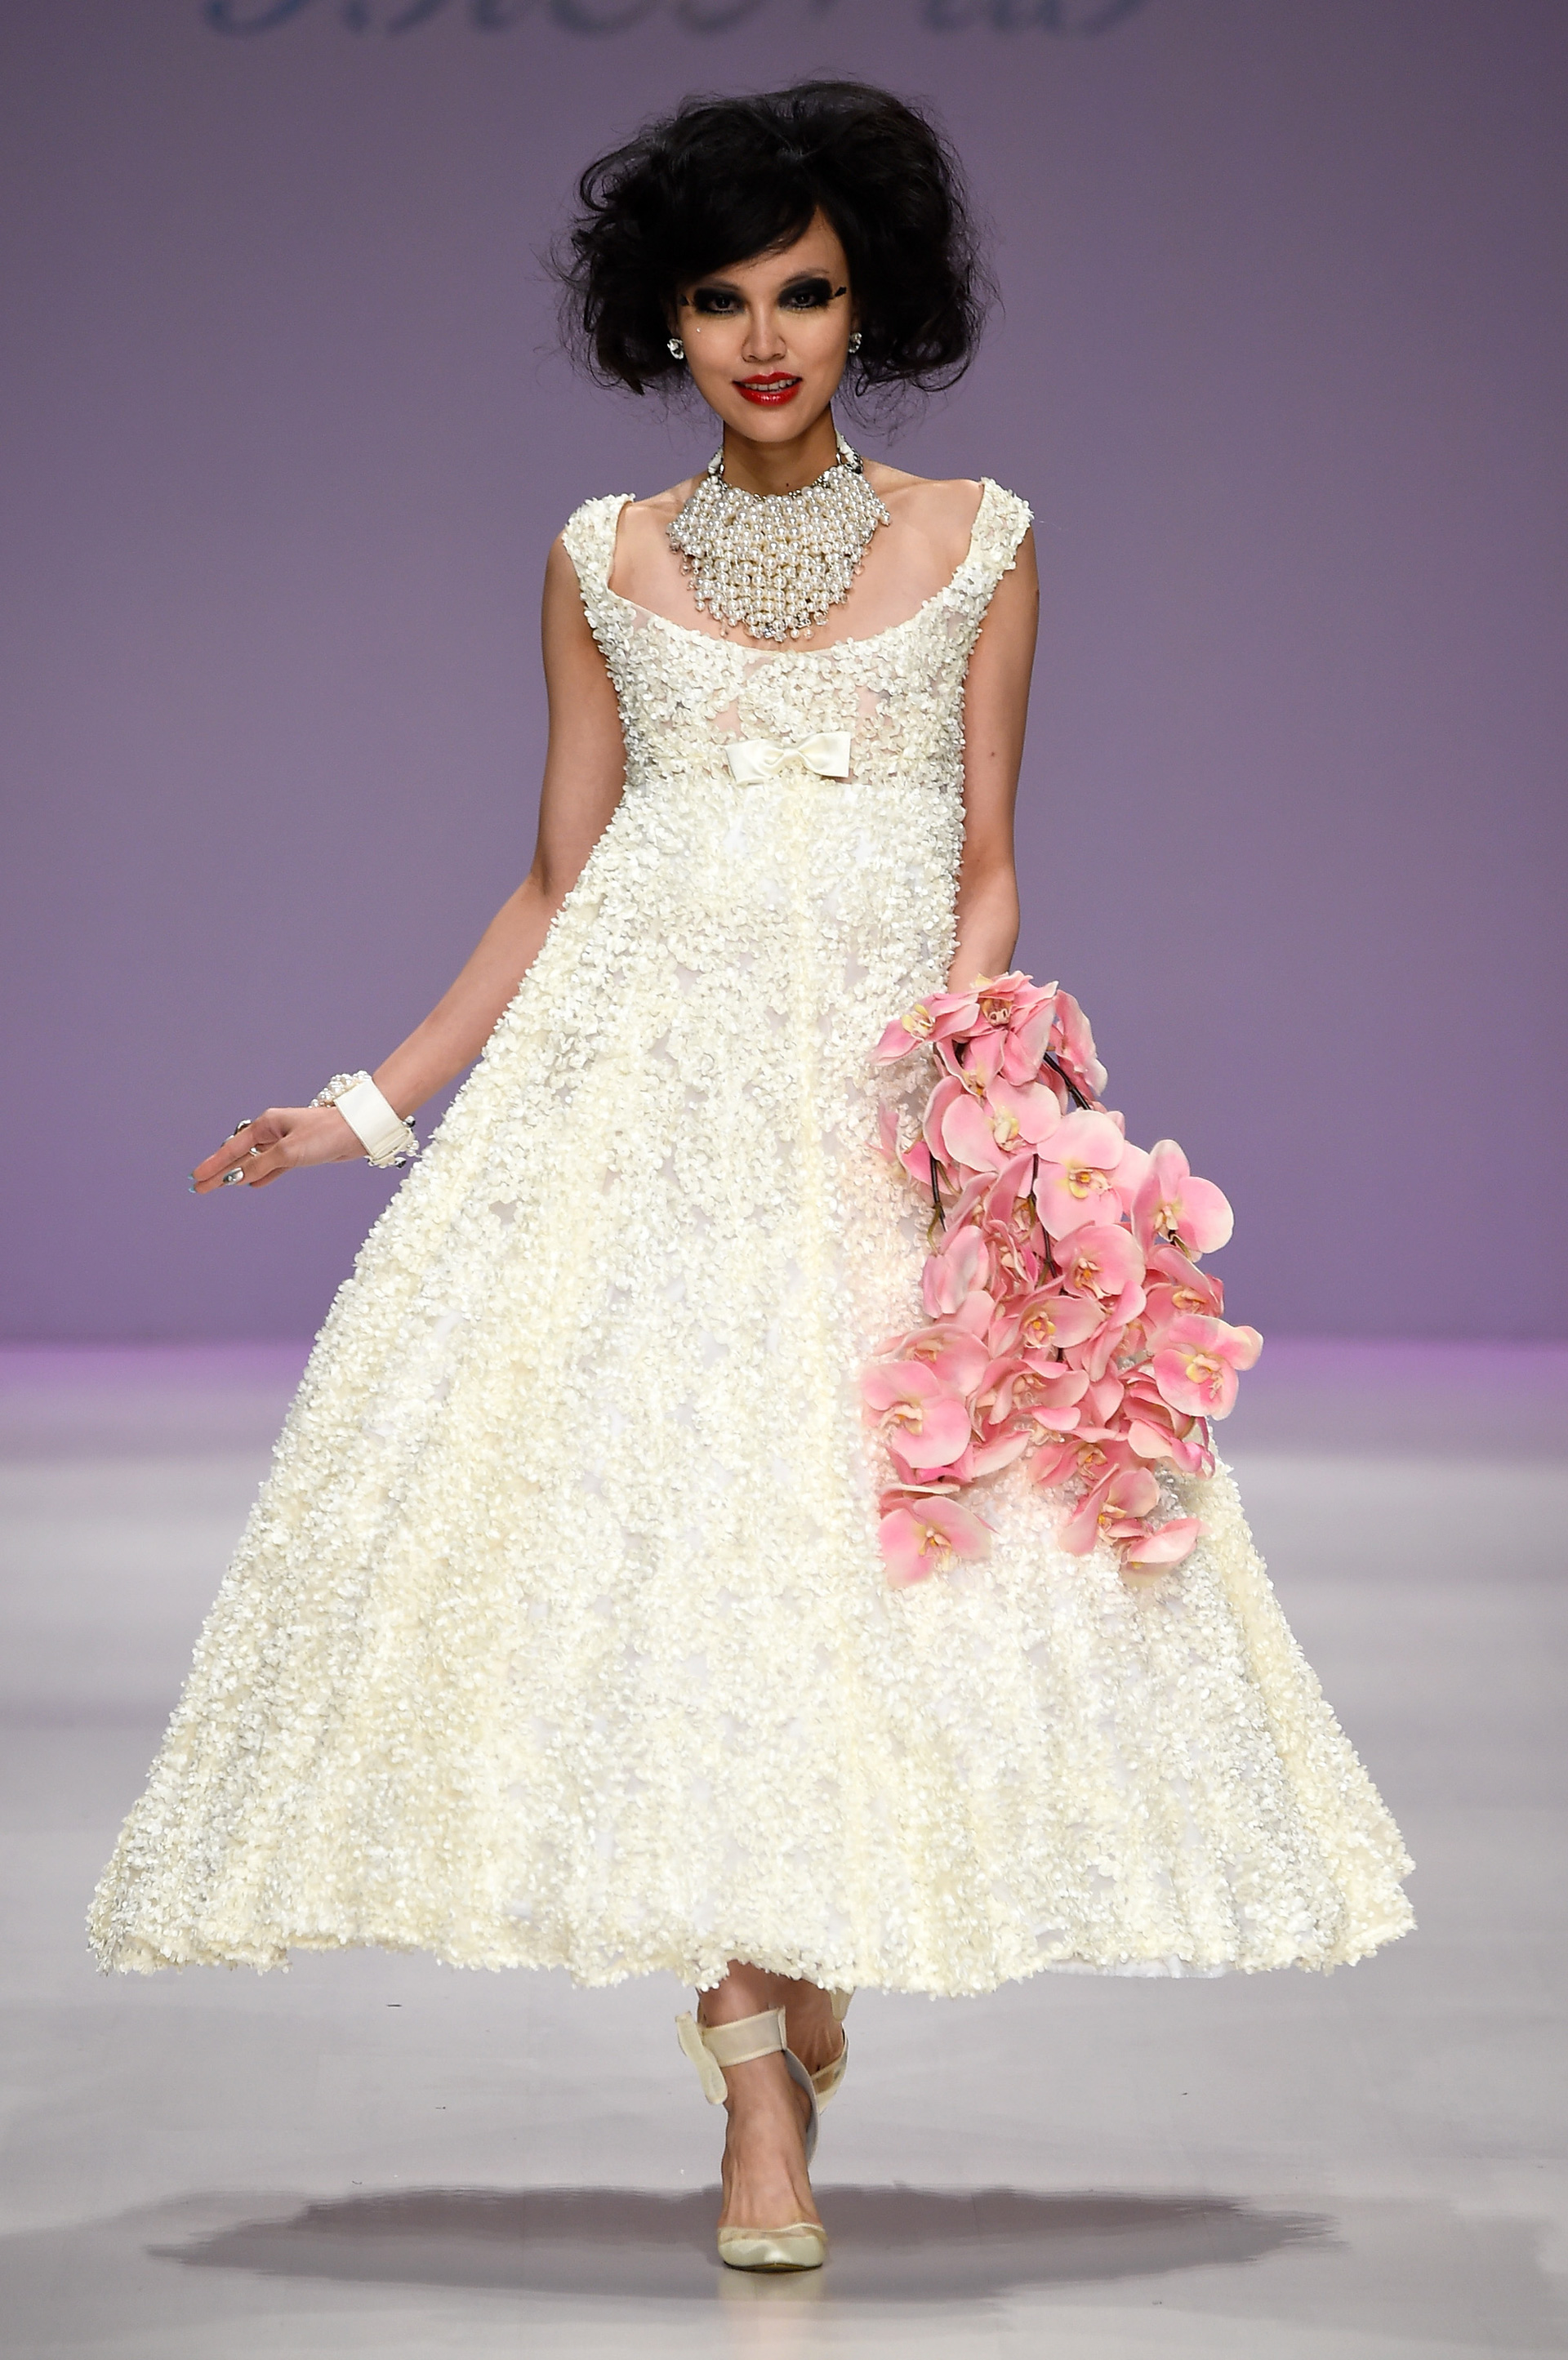 Betsey Johnson's spring 2015 collection 10